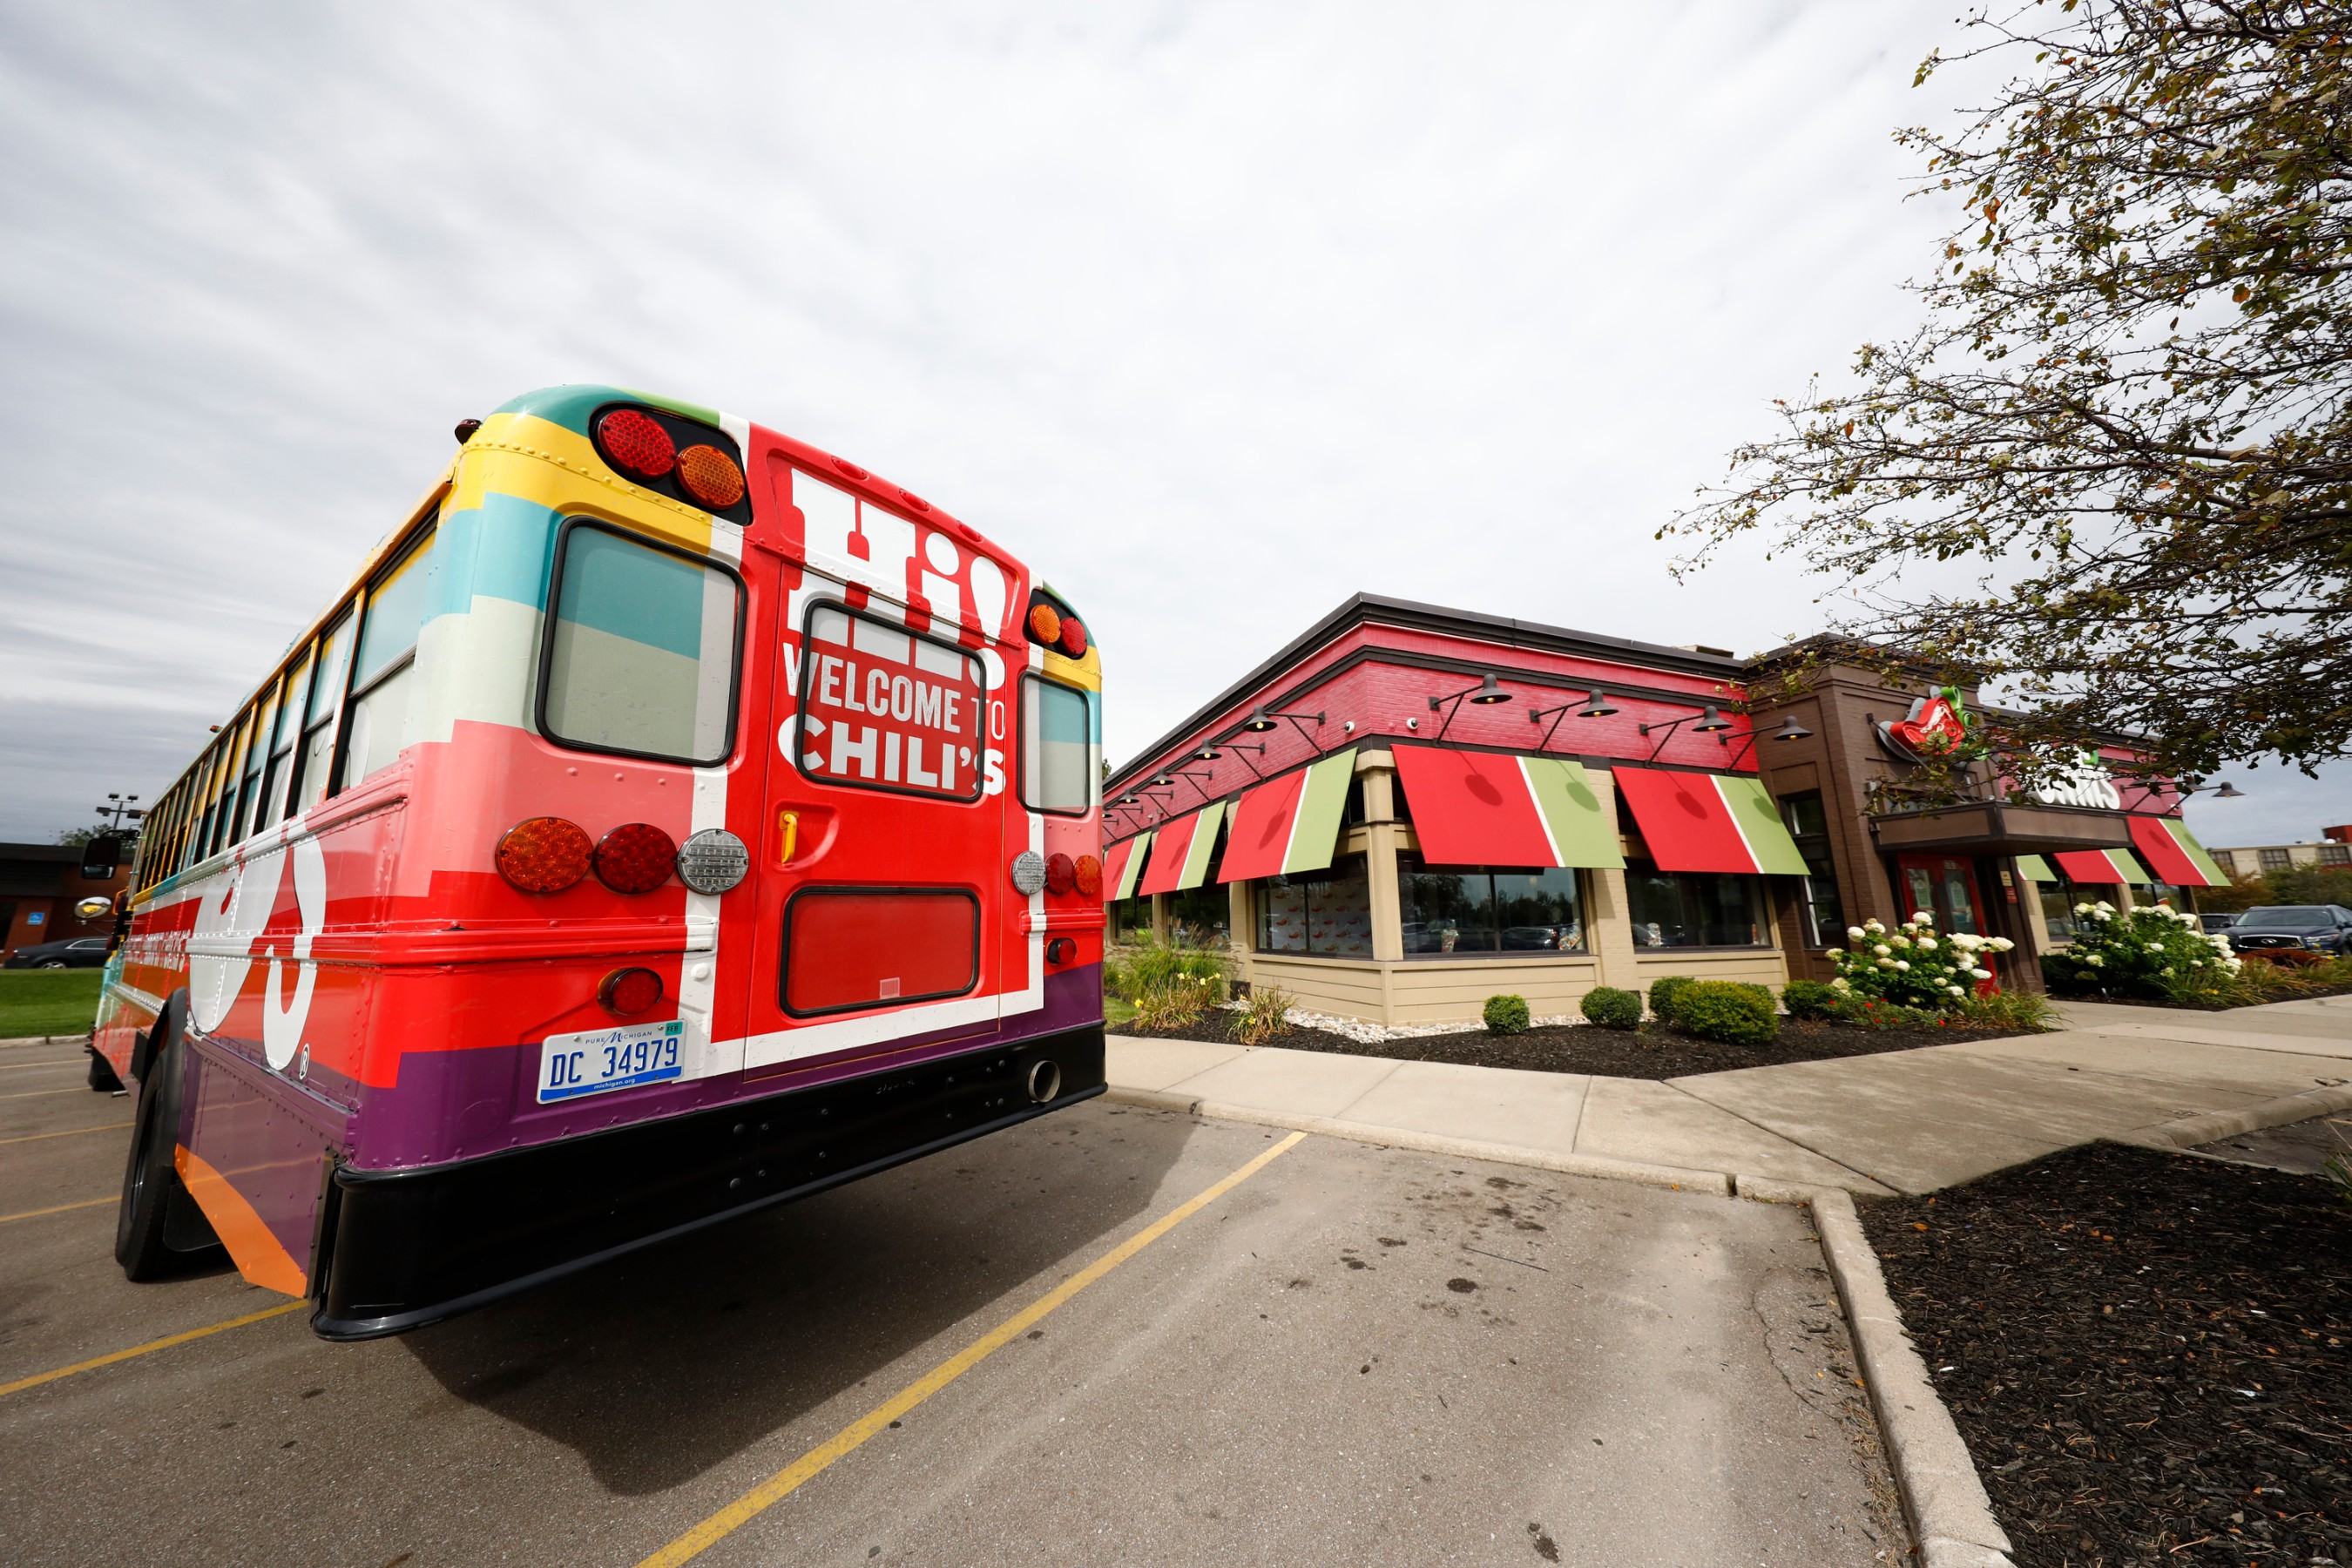 Chili's custom school bus arrives at Chili's Ford Road in Detroit, MI.